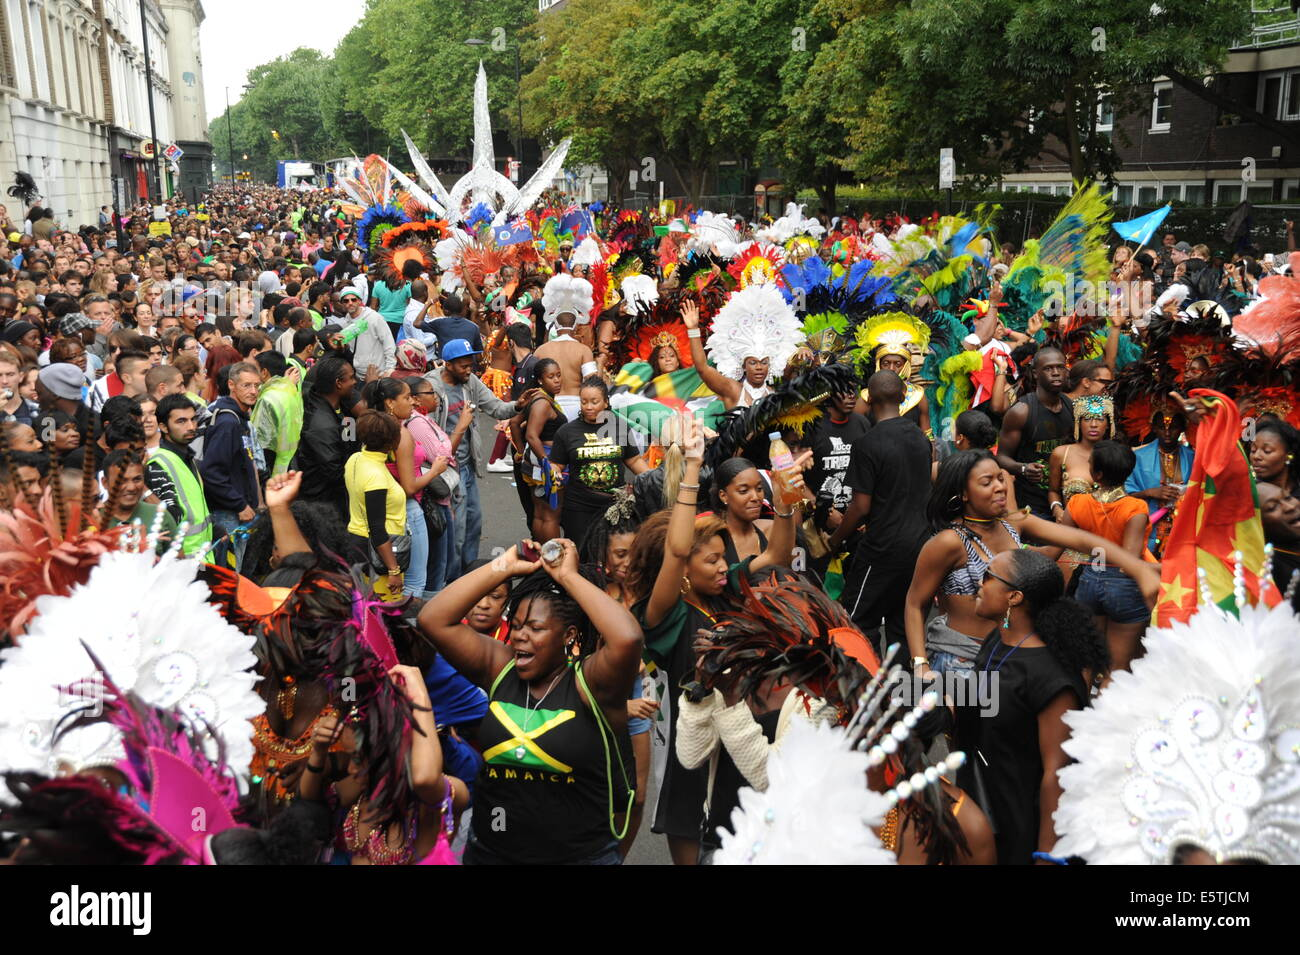 Crowds at Notting Hill Carnival 2012 - Stock Image